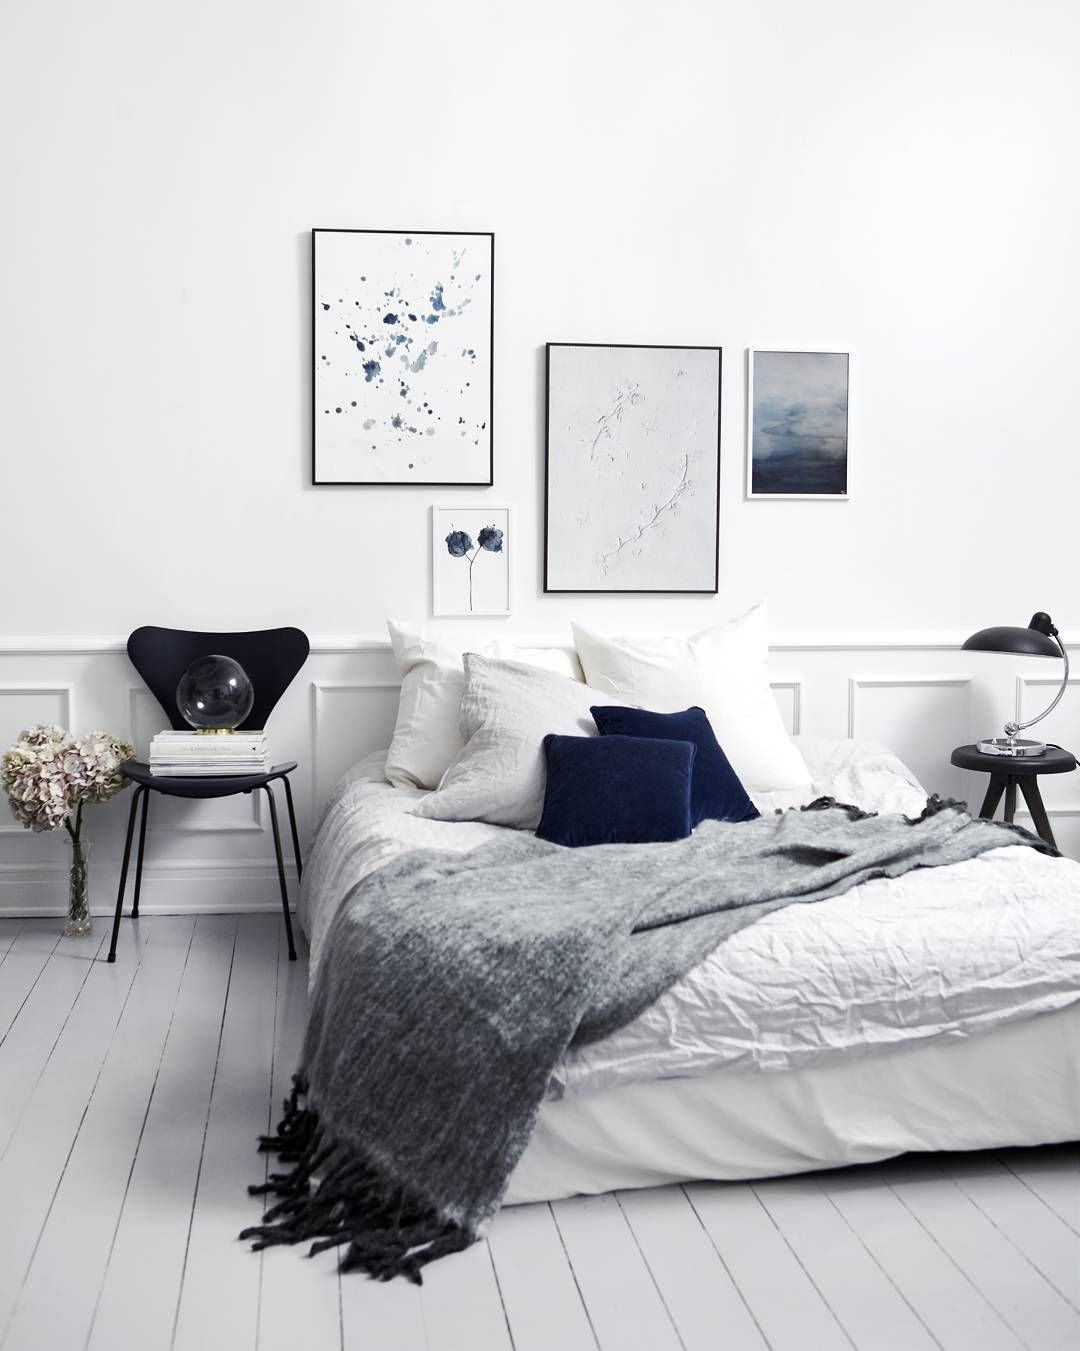 Trine Holbaek On Instagram The Perfect Setting For Relaxation In The Evening With Nature D Bedroom Design Trends Bedroom Interior Minimalist Bedroom Design